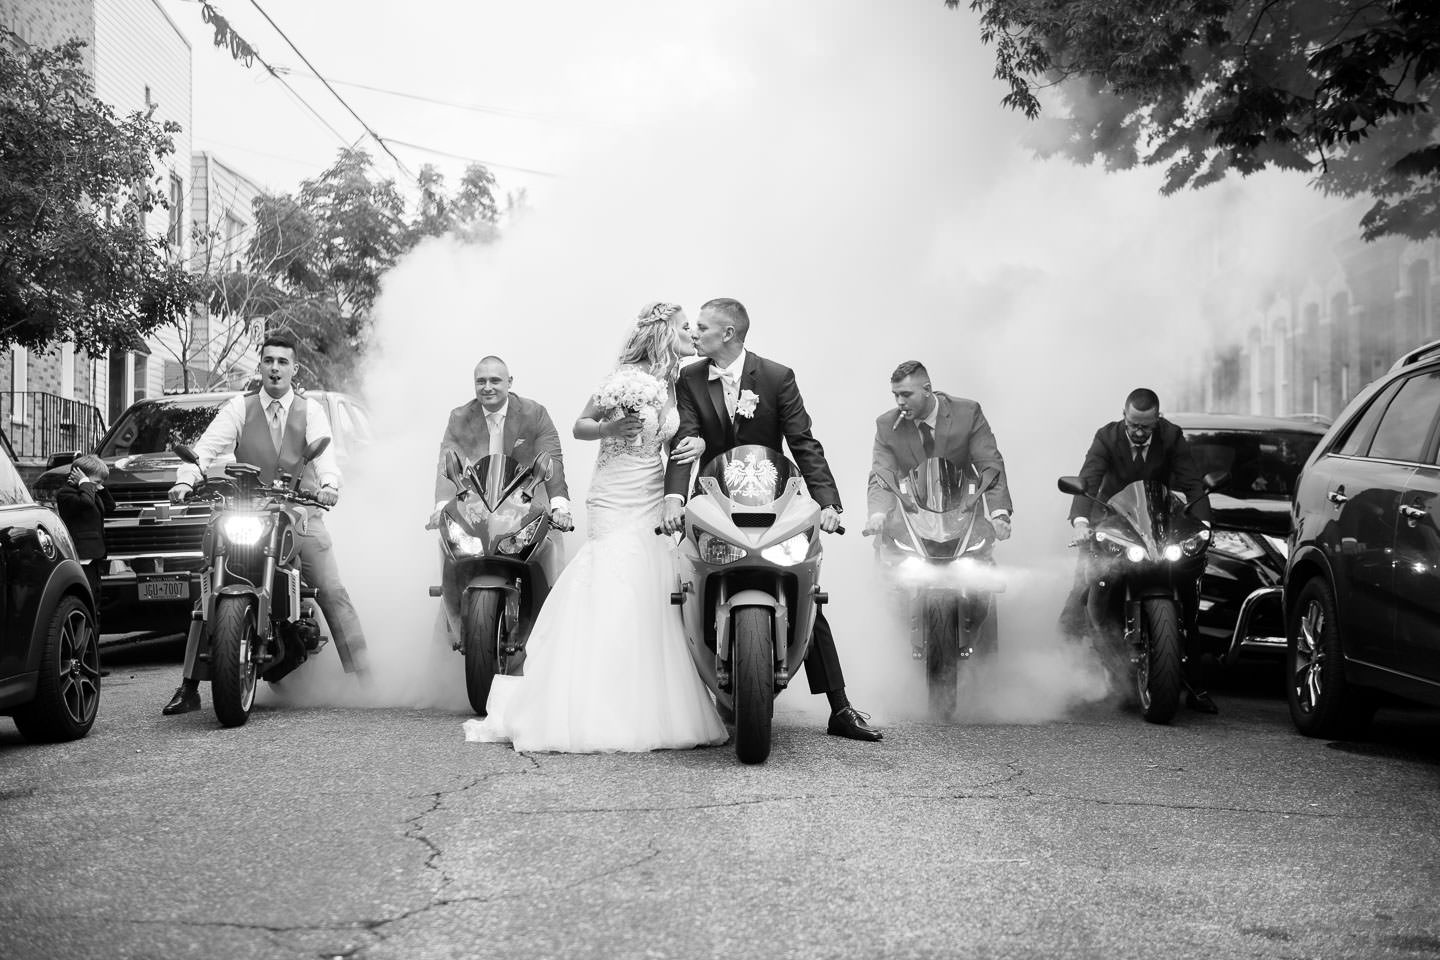 bride and groom pose with motorcycle while groomsmen do burnouts before wedding